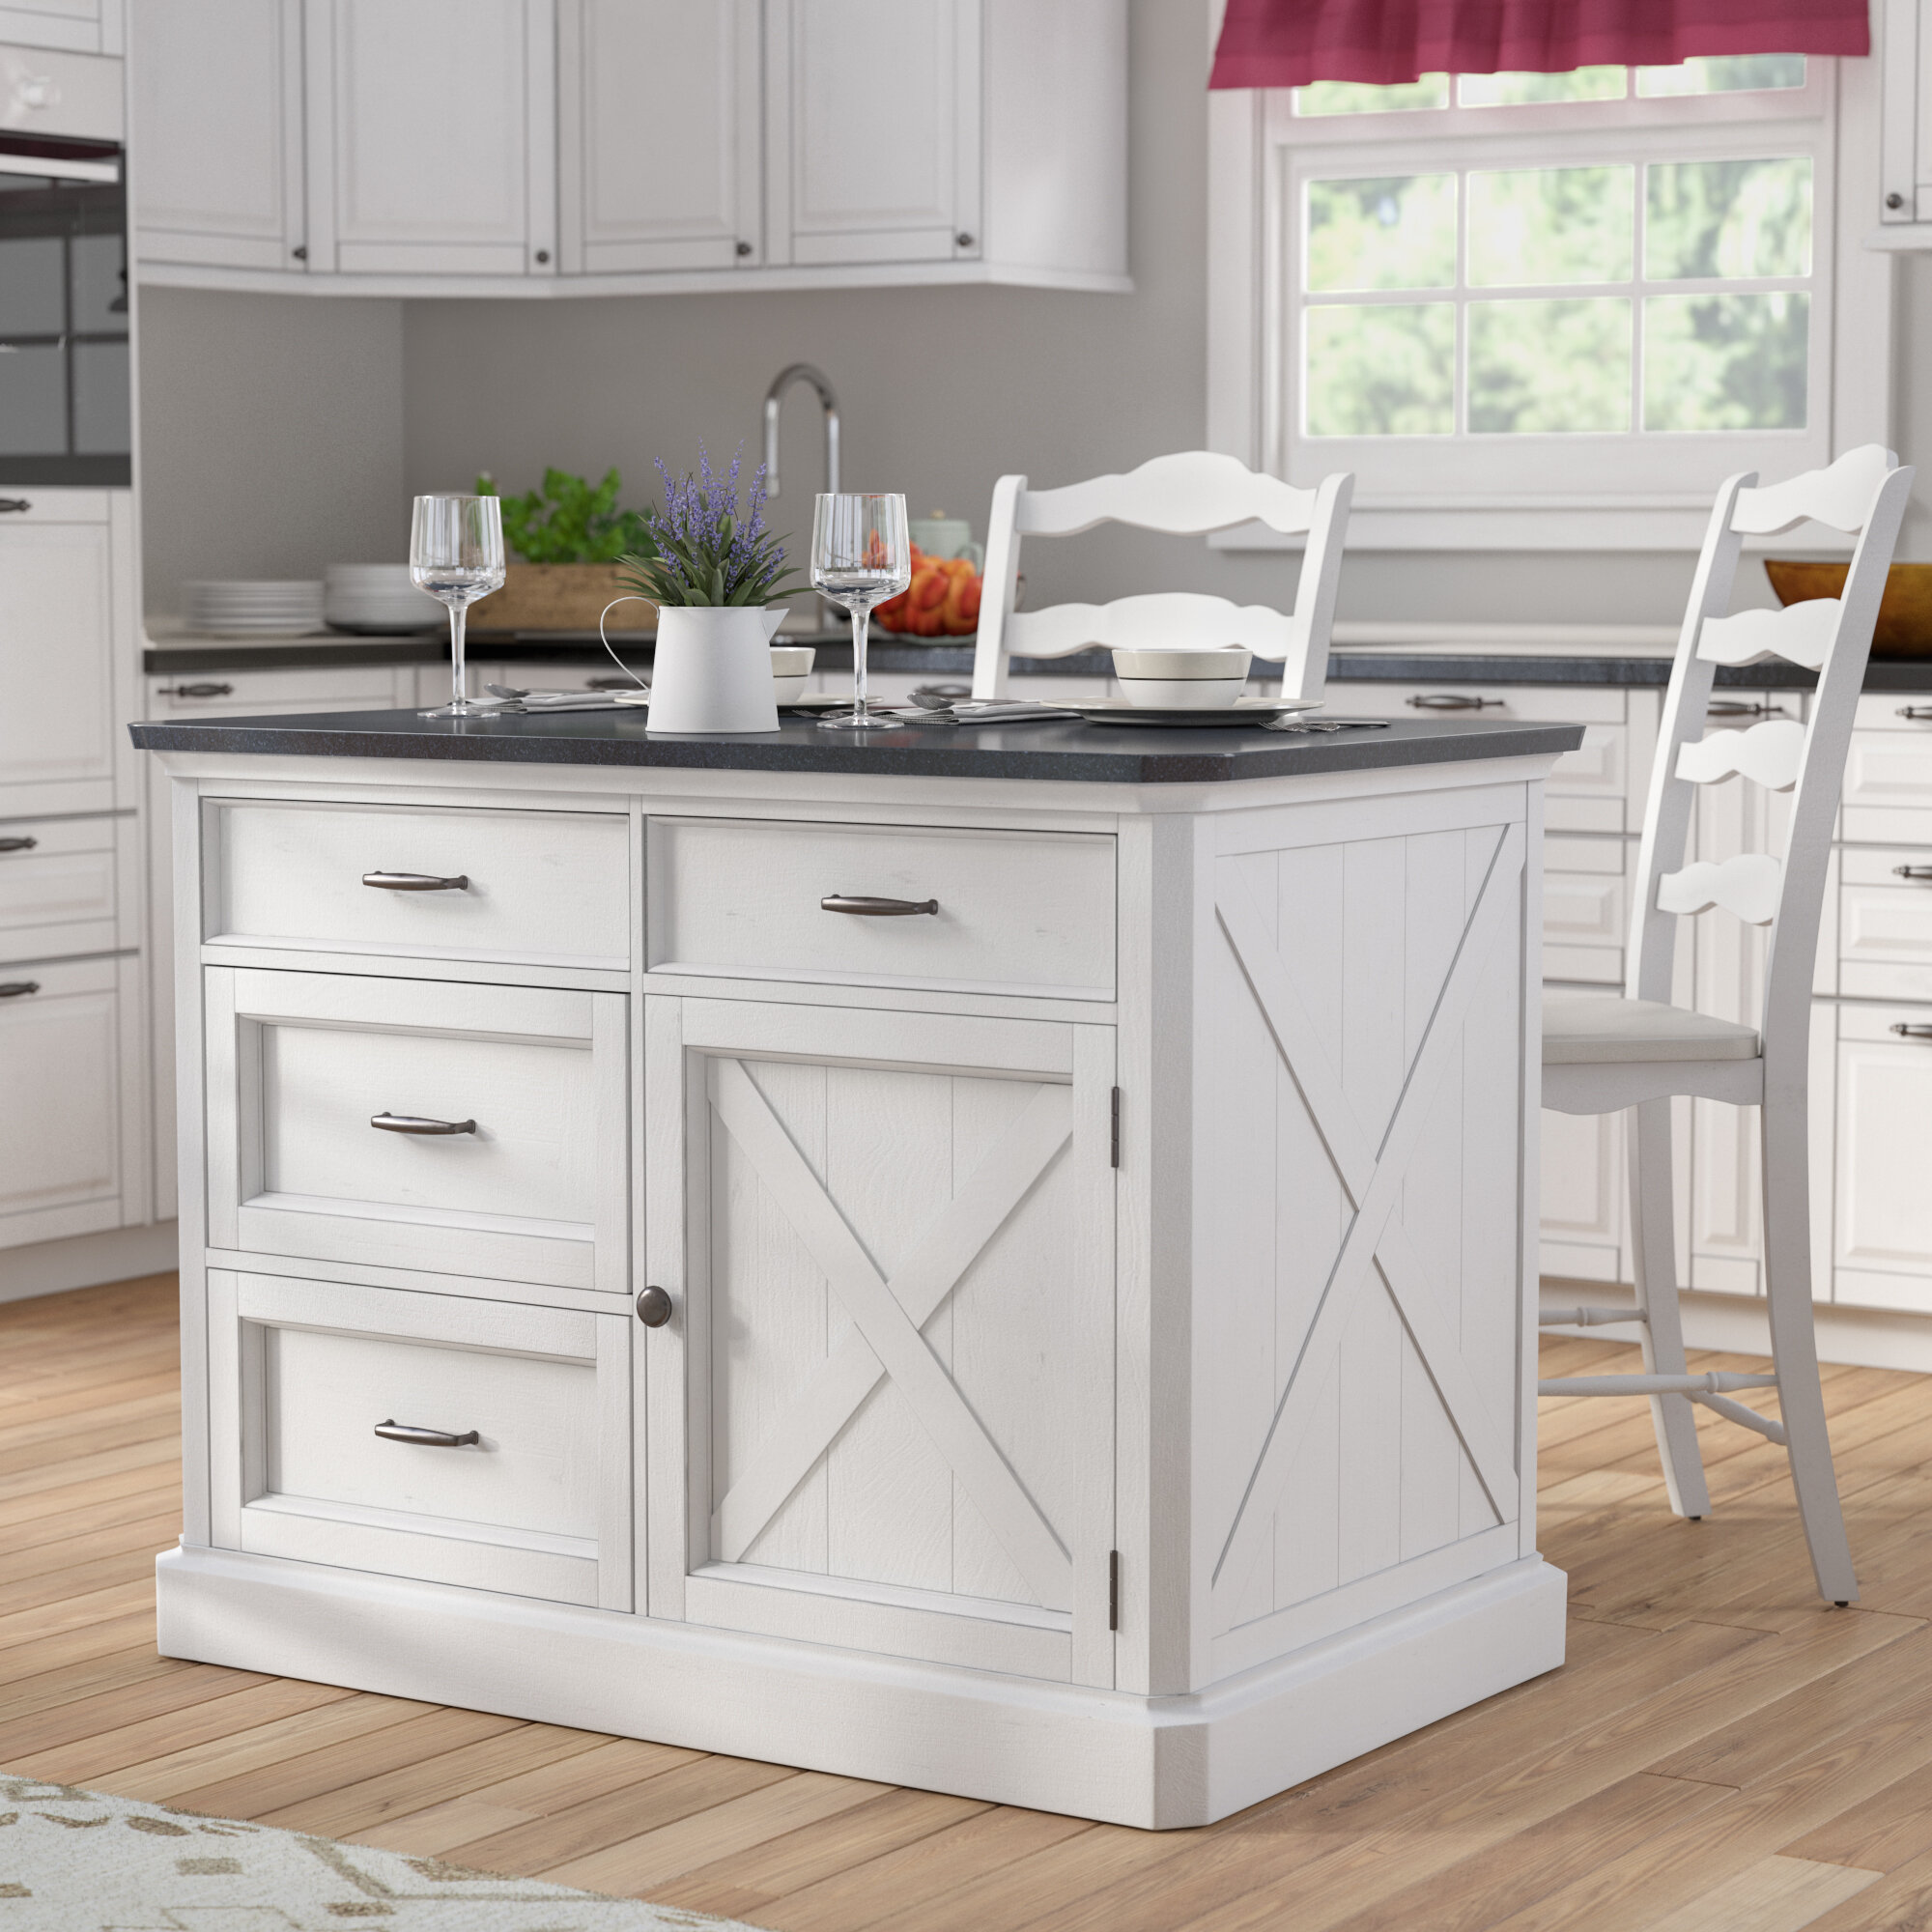 Kitchen Islands with Seating You ll Love